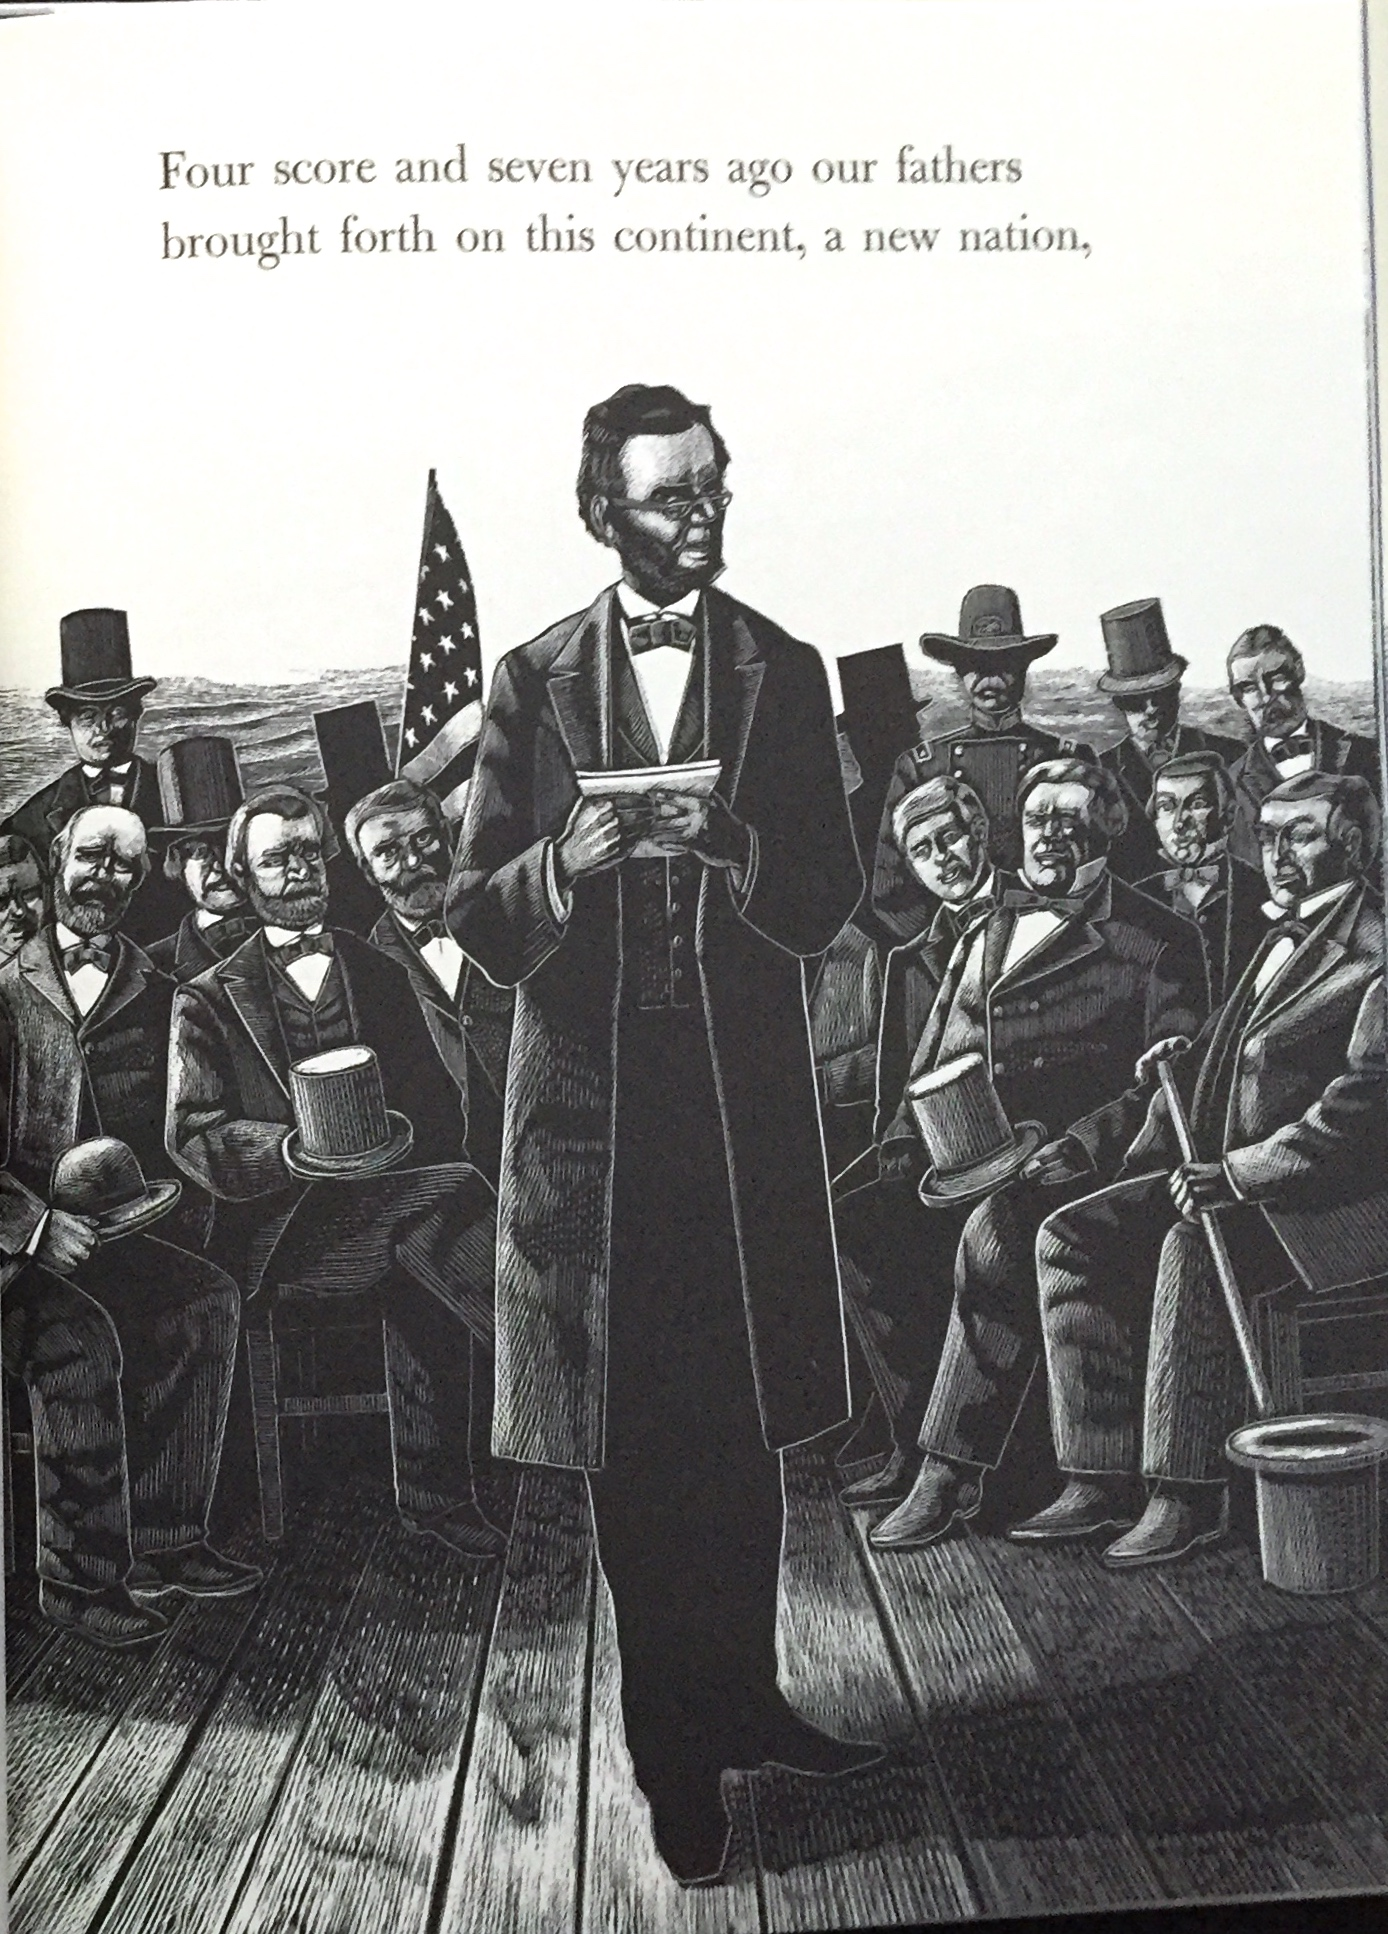 the gettysburg address by abraham lincoln illustrated by michael